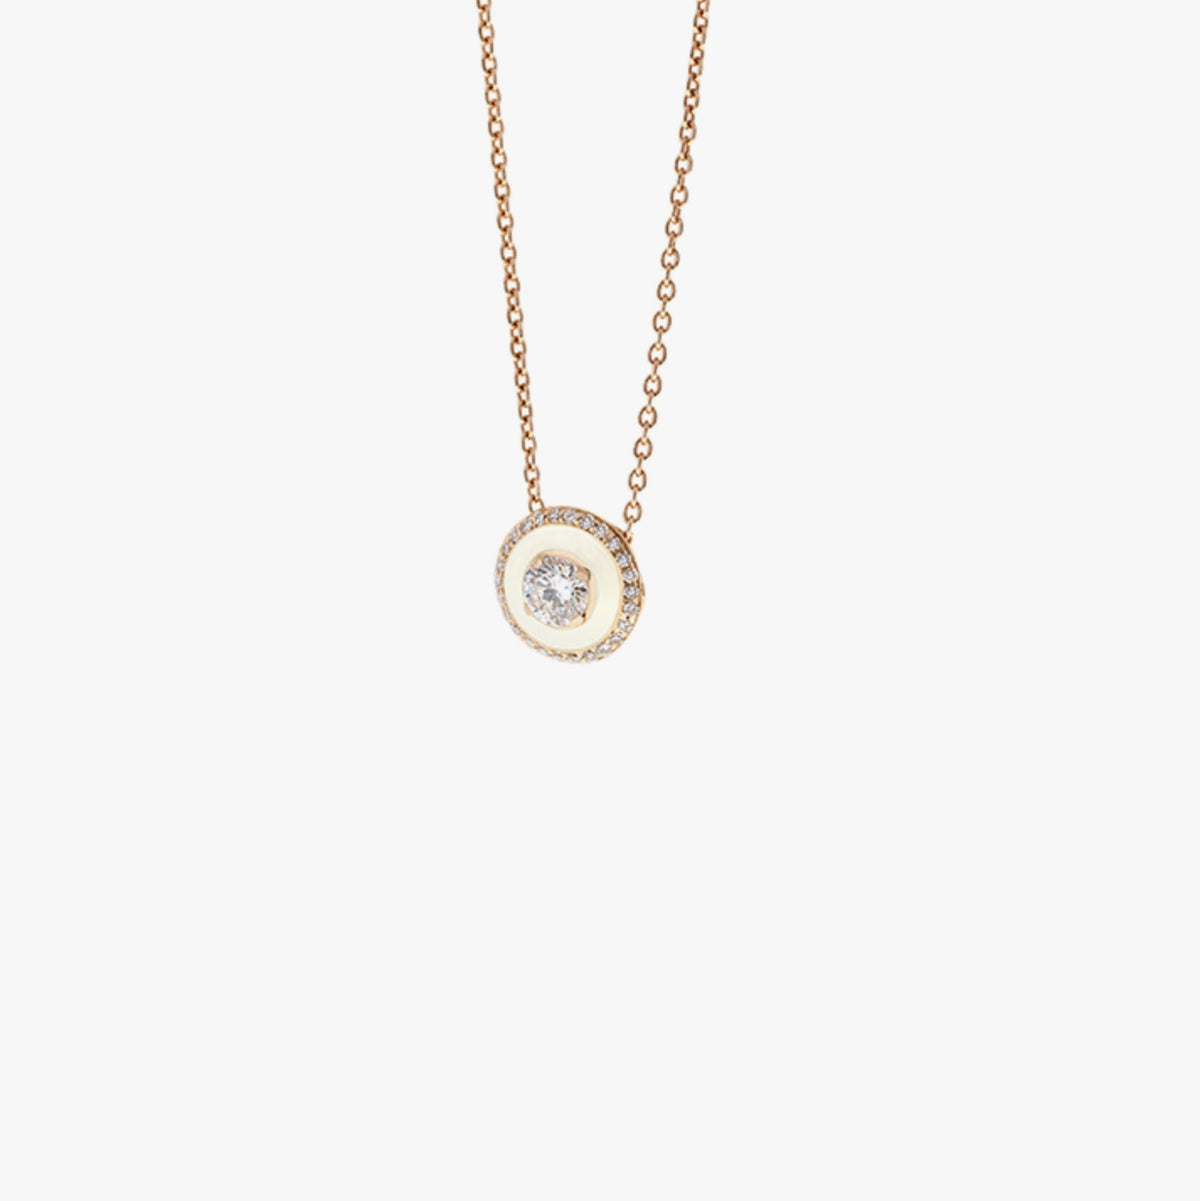 Mina Diamond Necklace